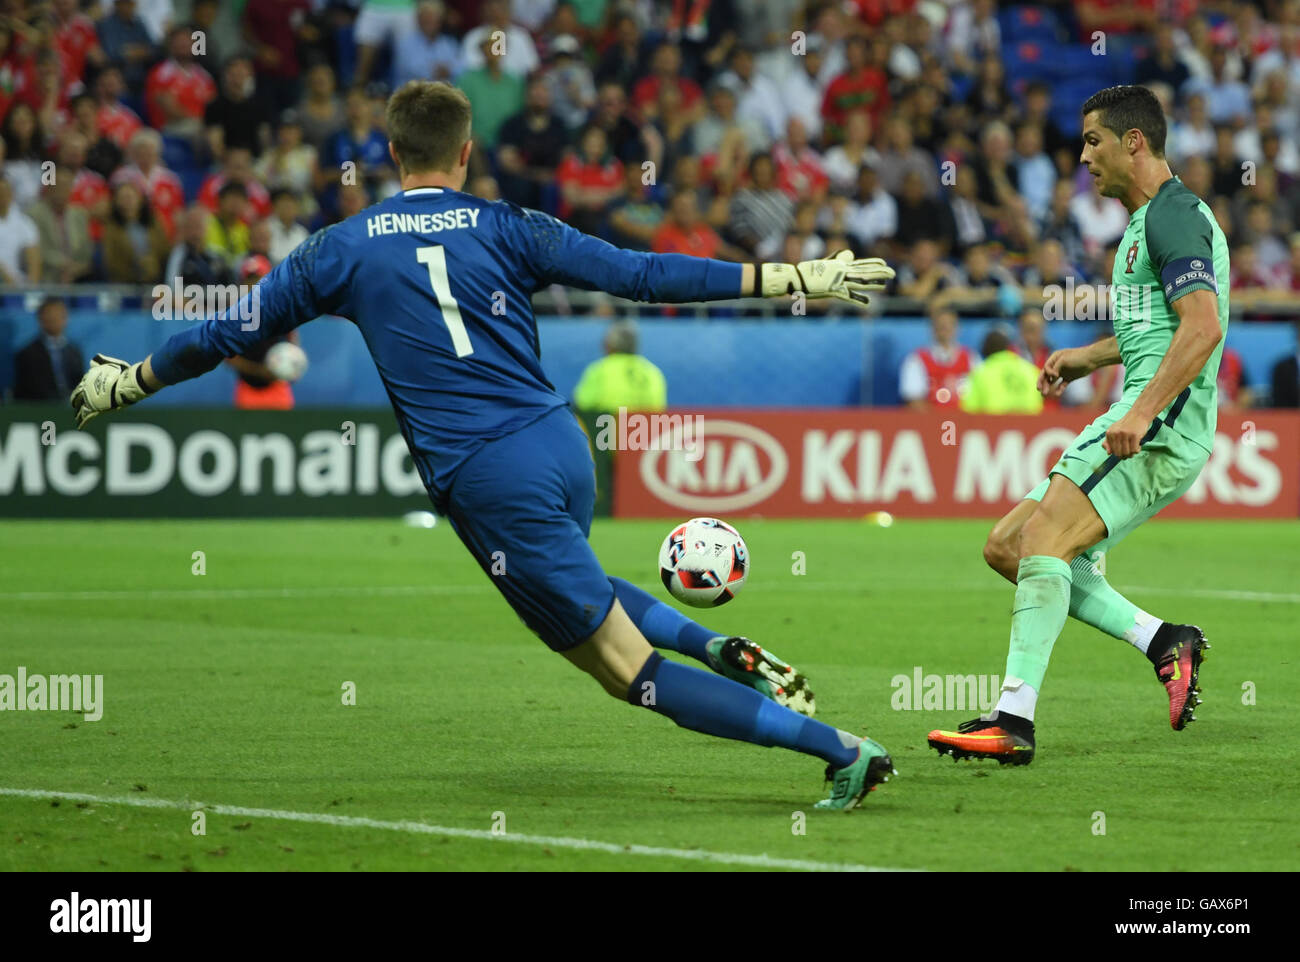 Lyon, France. 06th July, 2016. Cristiano Ronaldo of Portugal and goalkeeper Wayne Hennessey (L) of Wales vie for Stock Photo